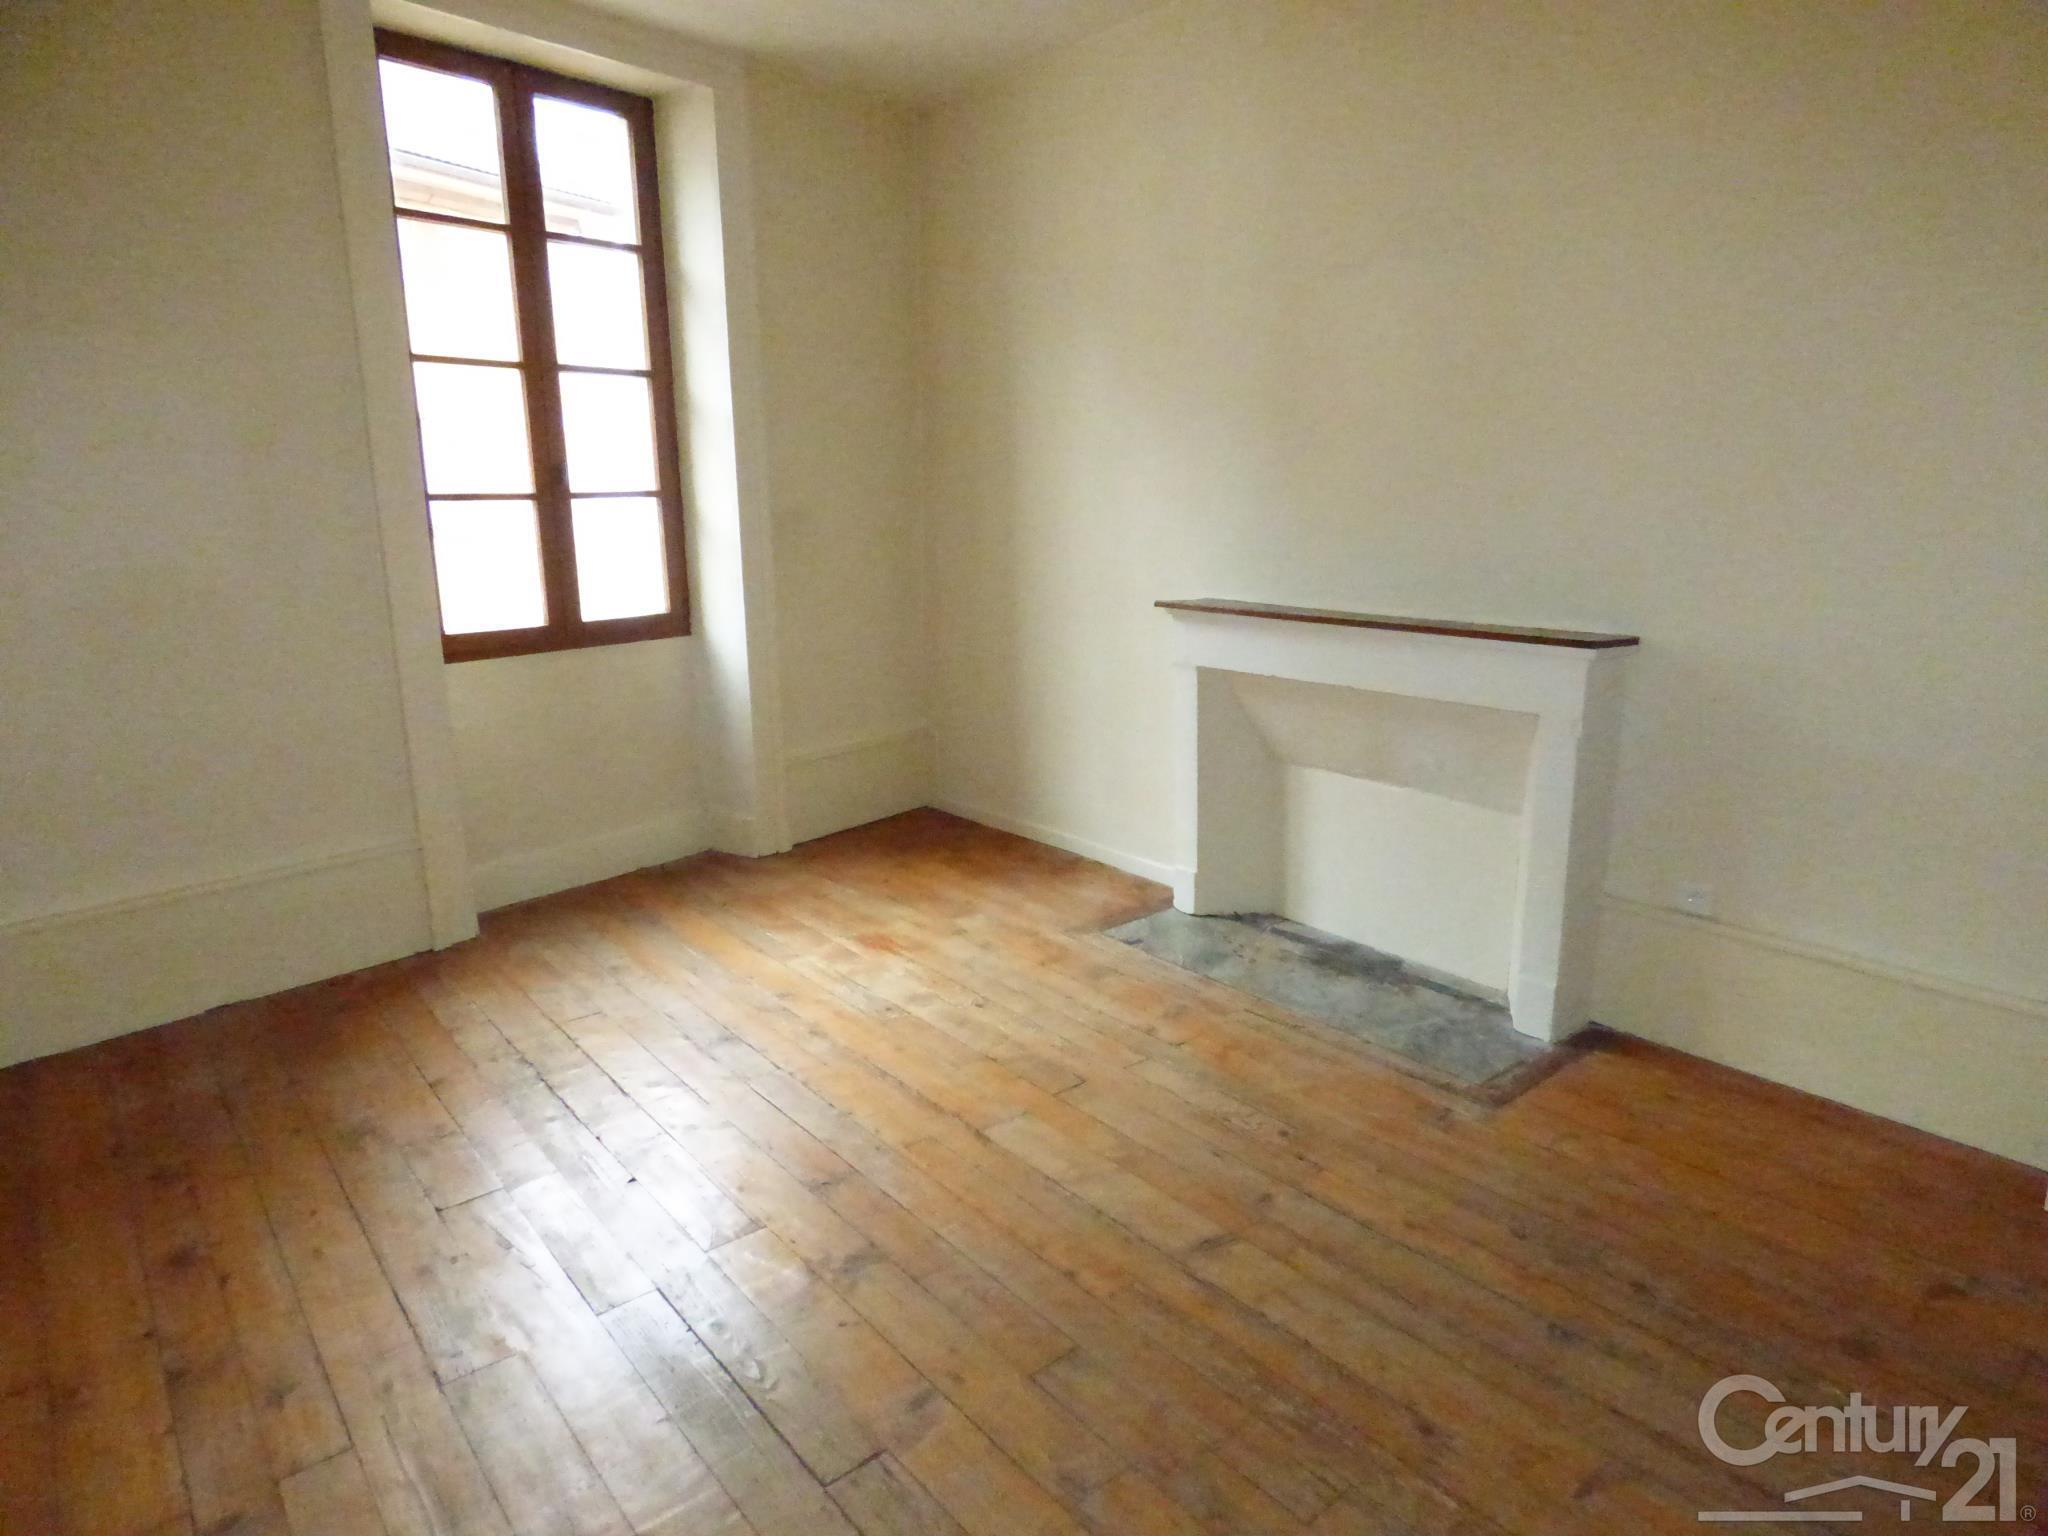 Location Appartement 3 Pieces 58 M Annecy 764